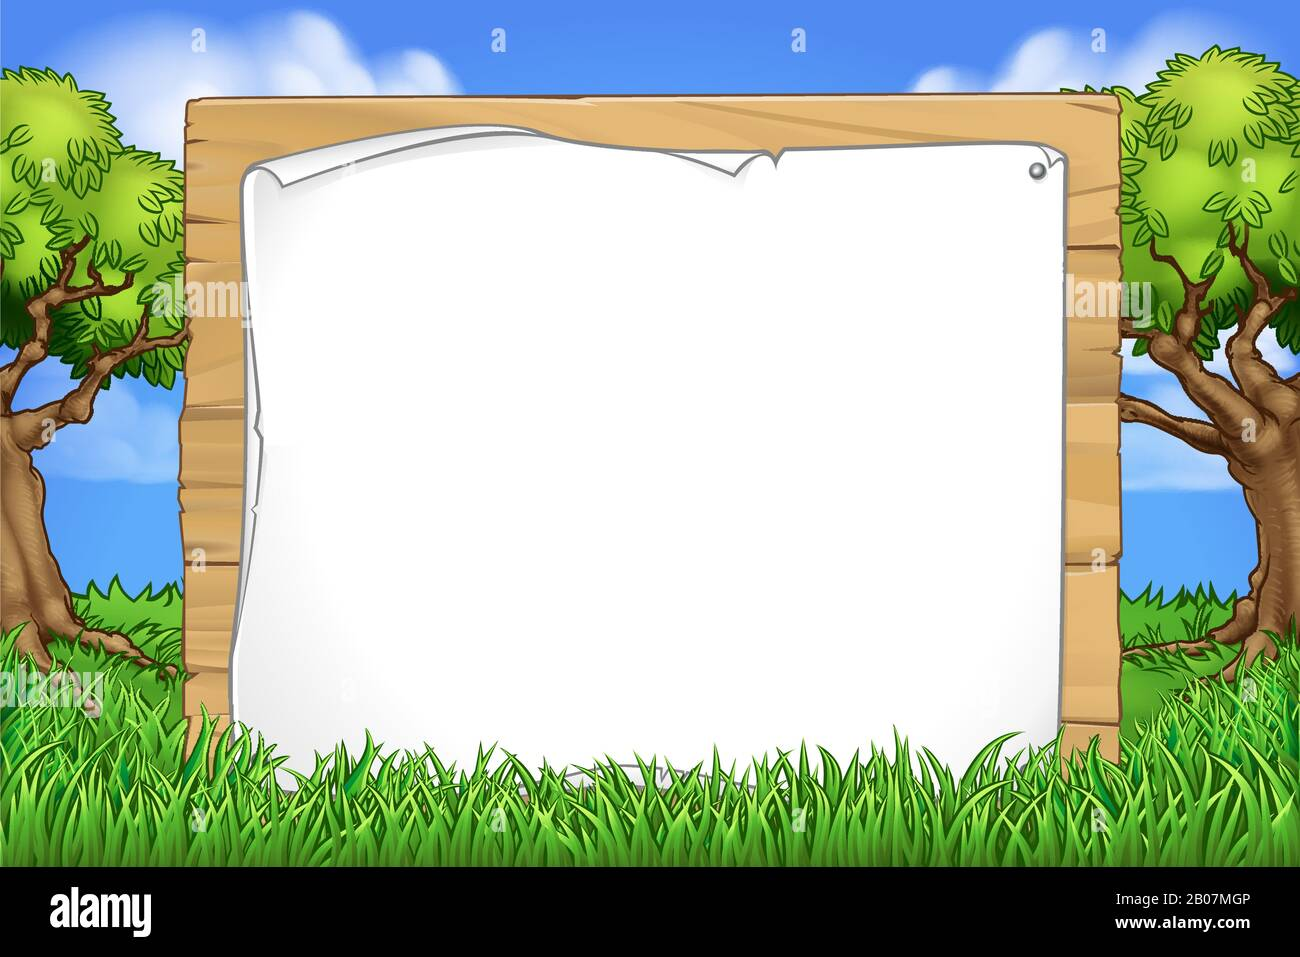 Cartoon Background Wooden Sign Park Forest Stock Vector Image Art Alamy